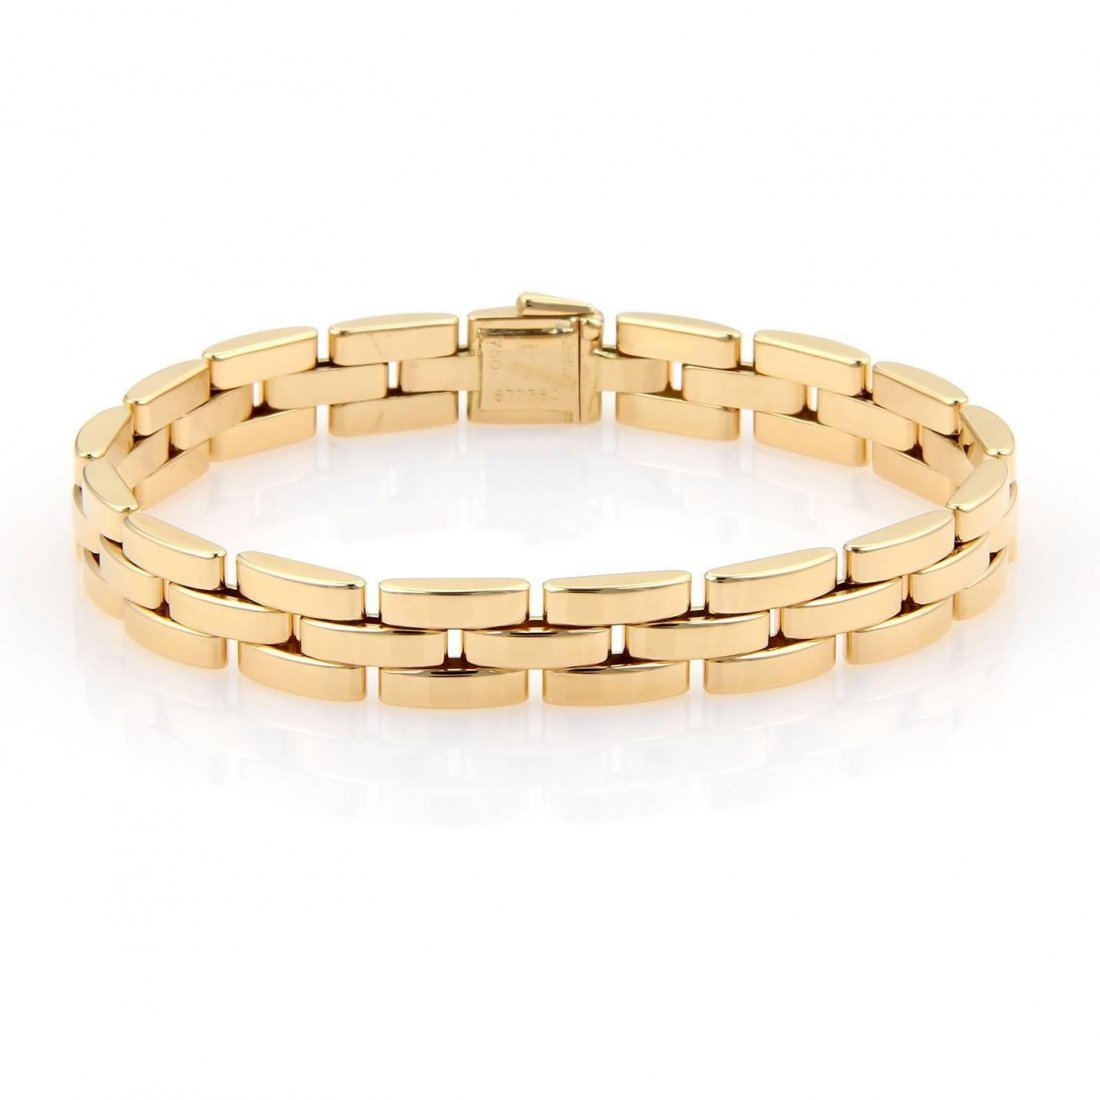 Cartier 18kt Yellow Gold Maillon Panthere Bracelet With